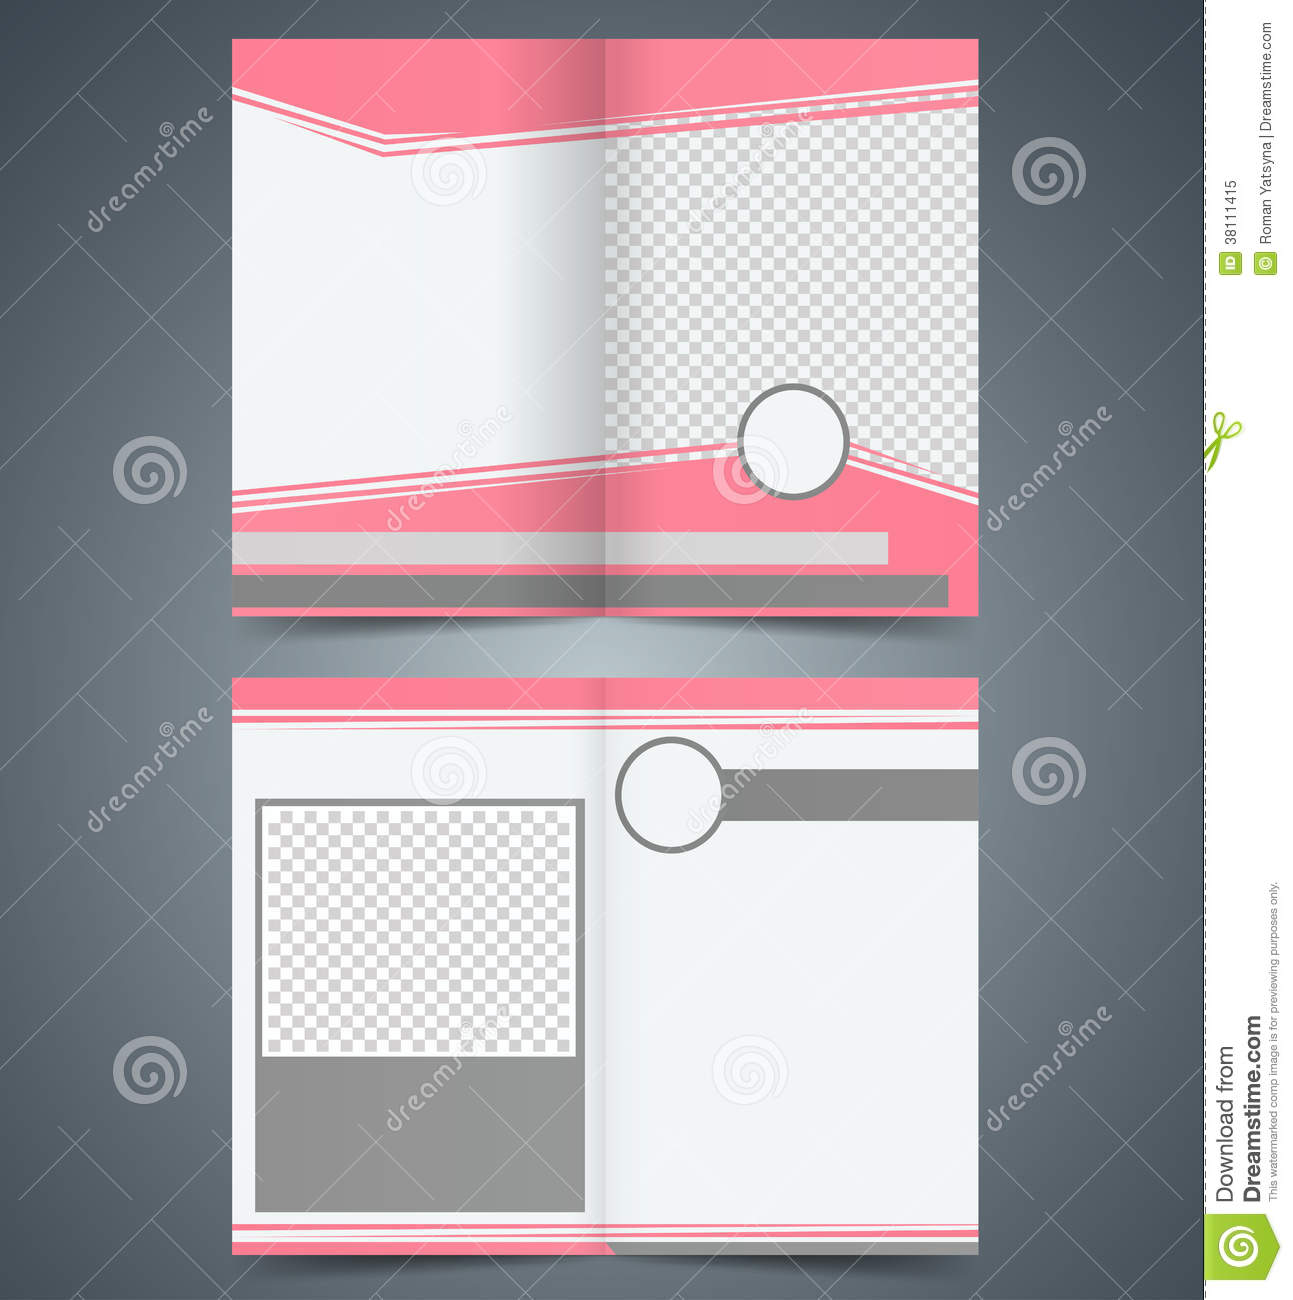 Empty bifold brochure template design with pink co stock for Magazine layout templates free download